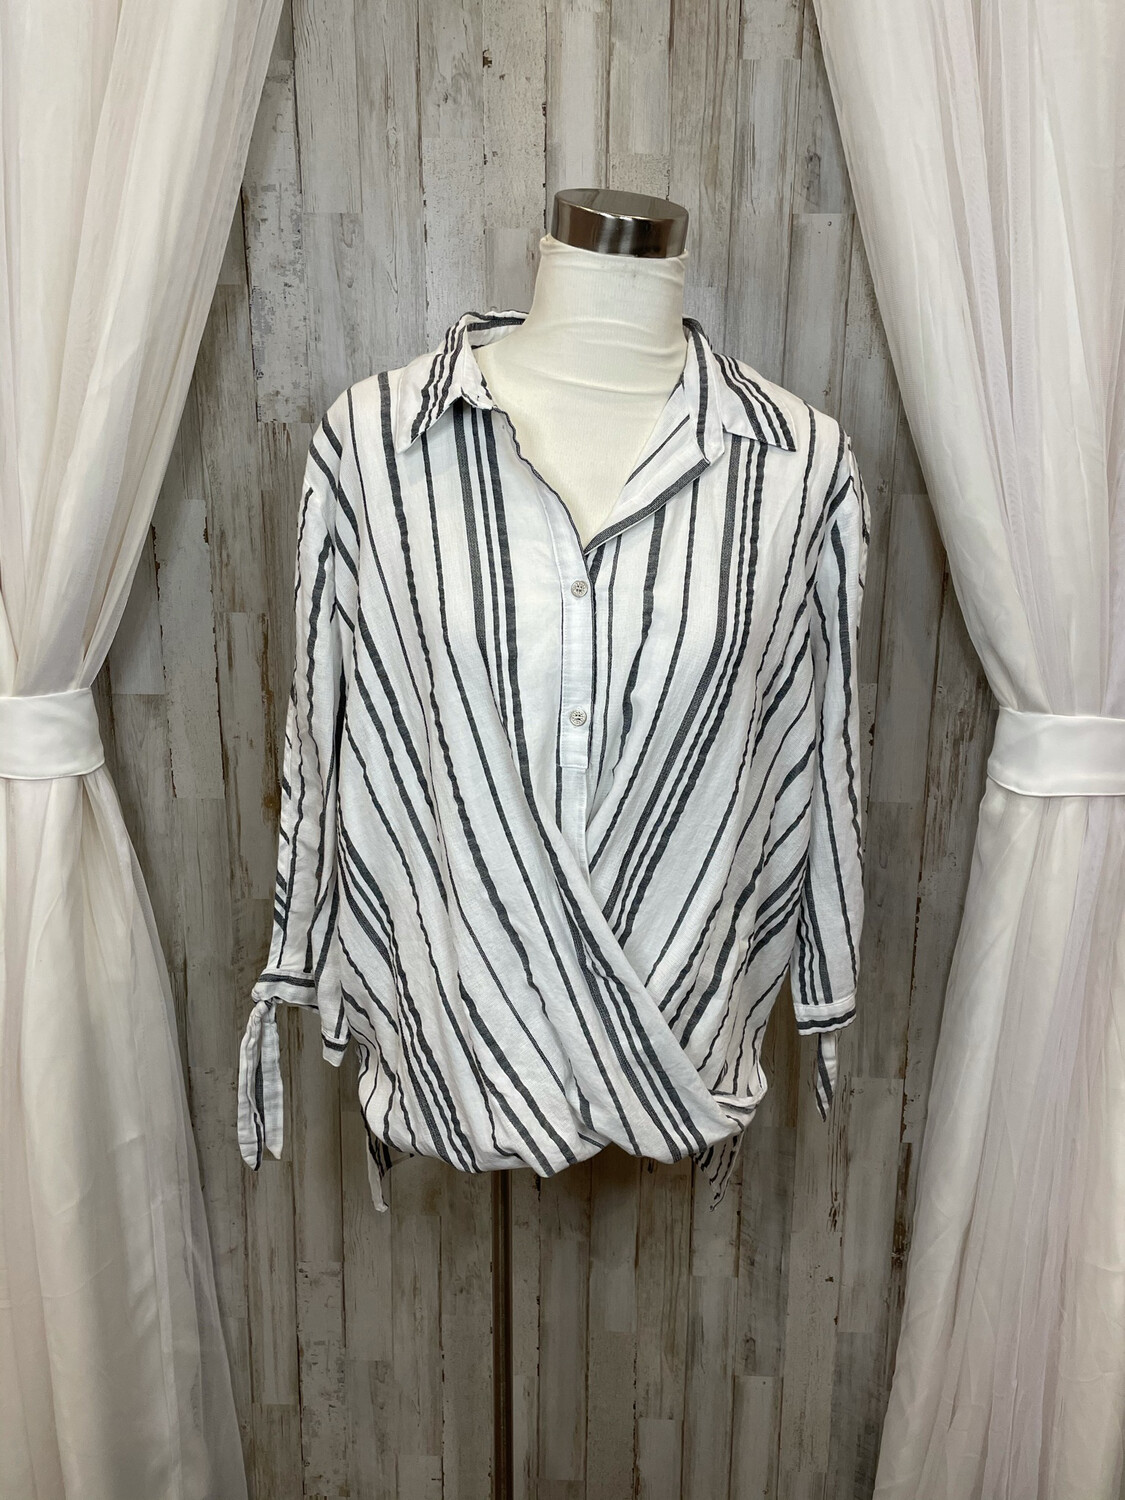 Hopely White & Grey Striped Oversized Crossover Top - S